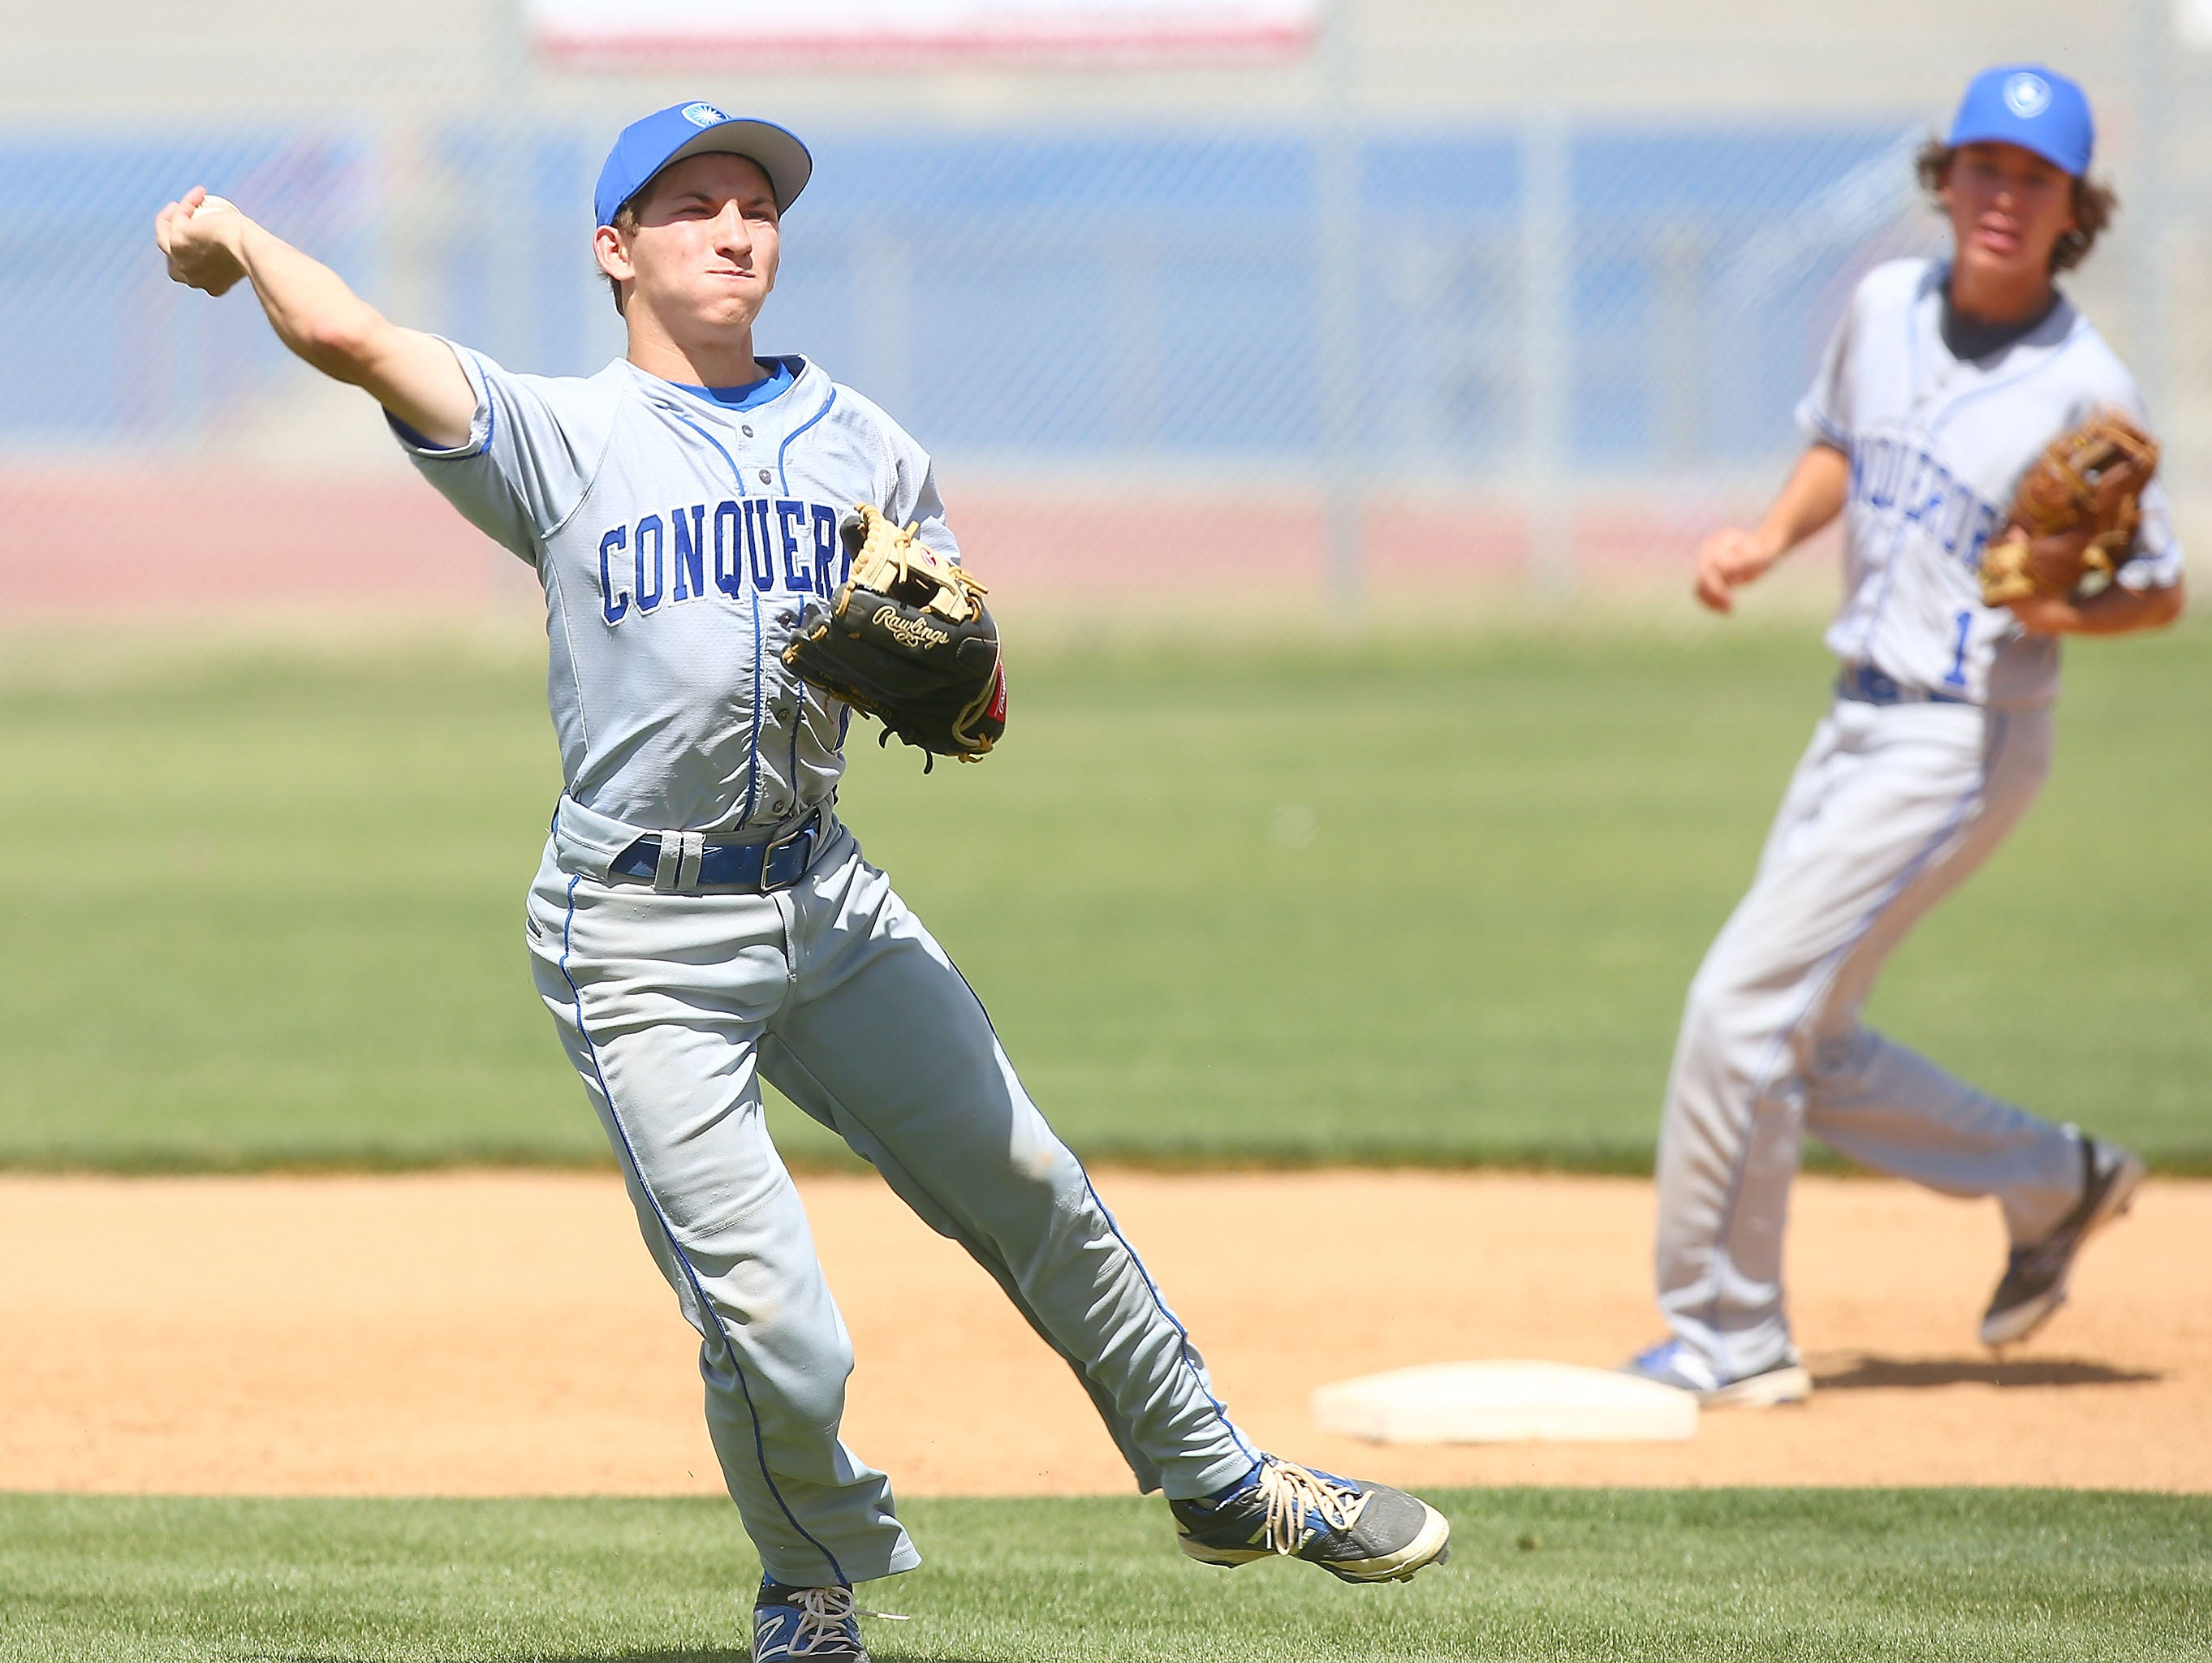 Brandon Bolton makes an infield out for Desert Christian Academy during their game against Indio, March 28, 2016.